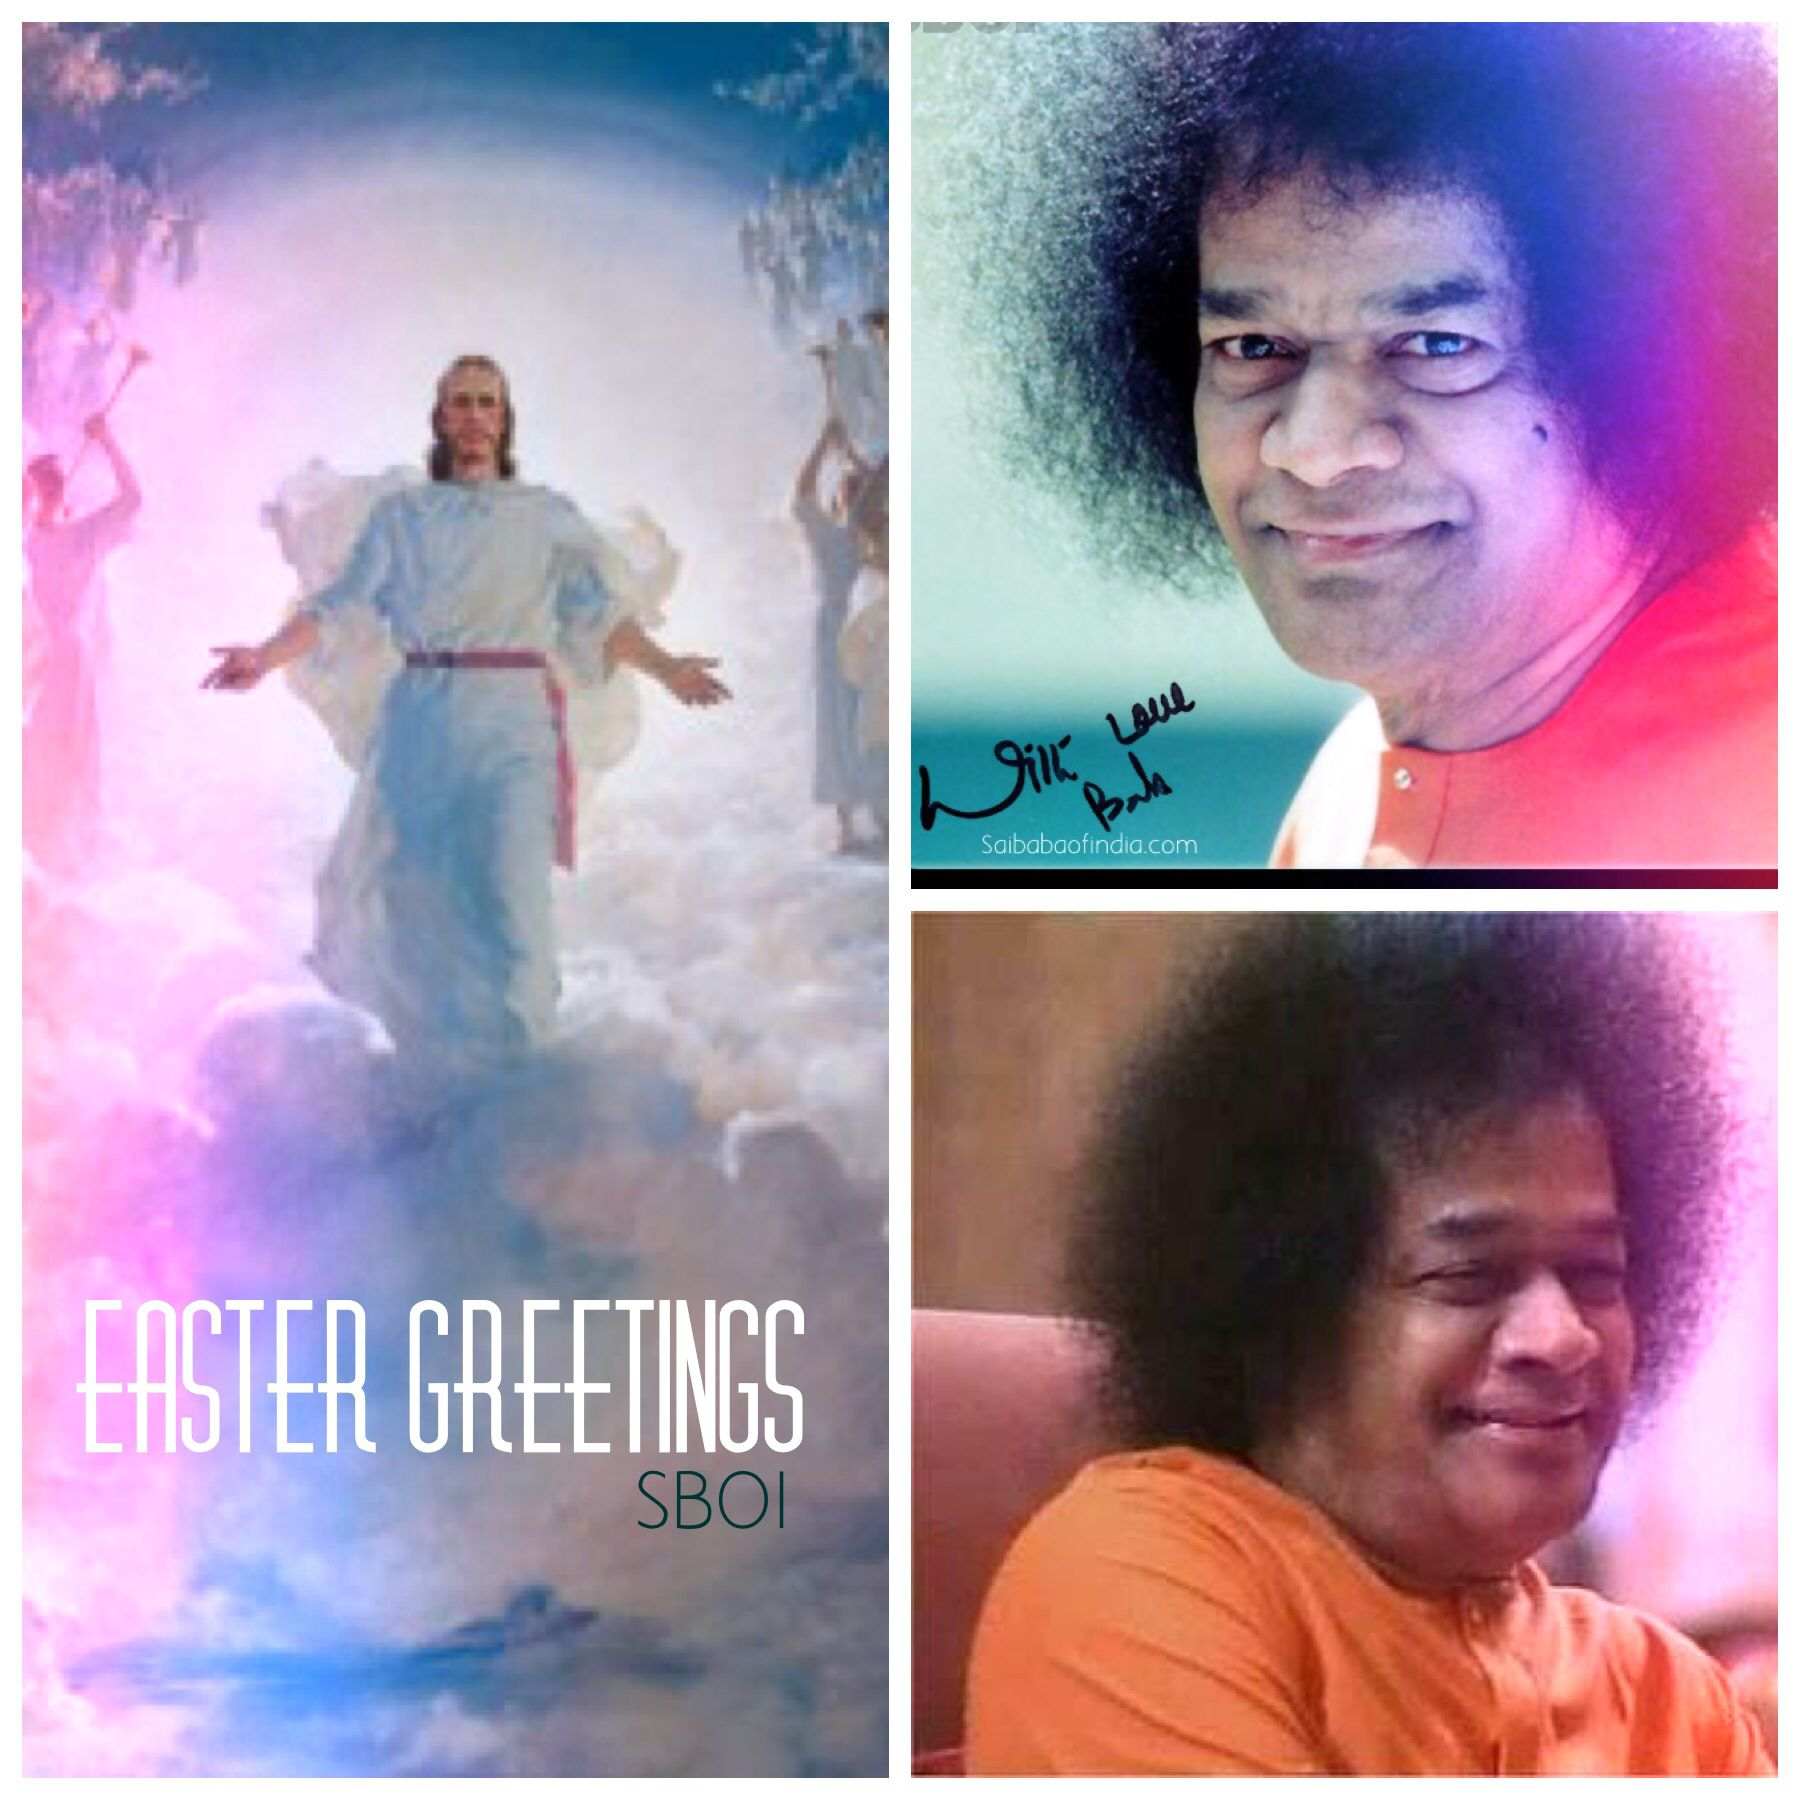 Easter greetings to all love all serve all sri sathya sai easter greetings to all love all serve all kristyandbryce Image collections